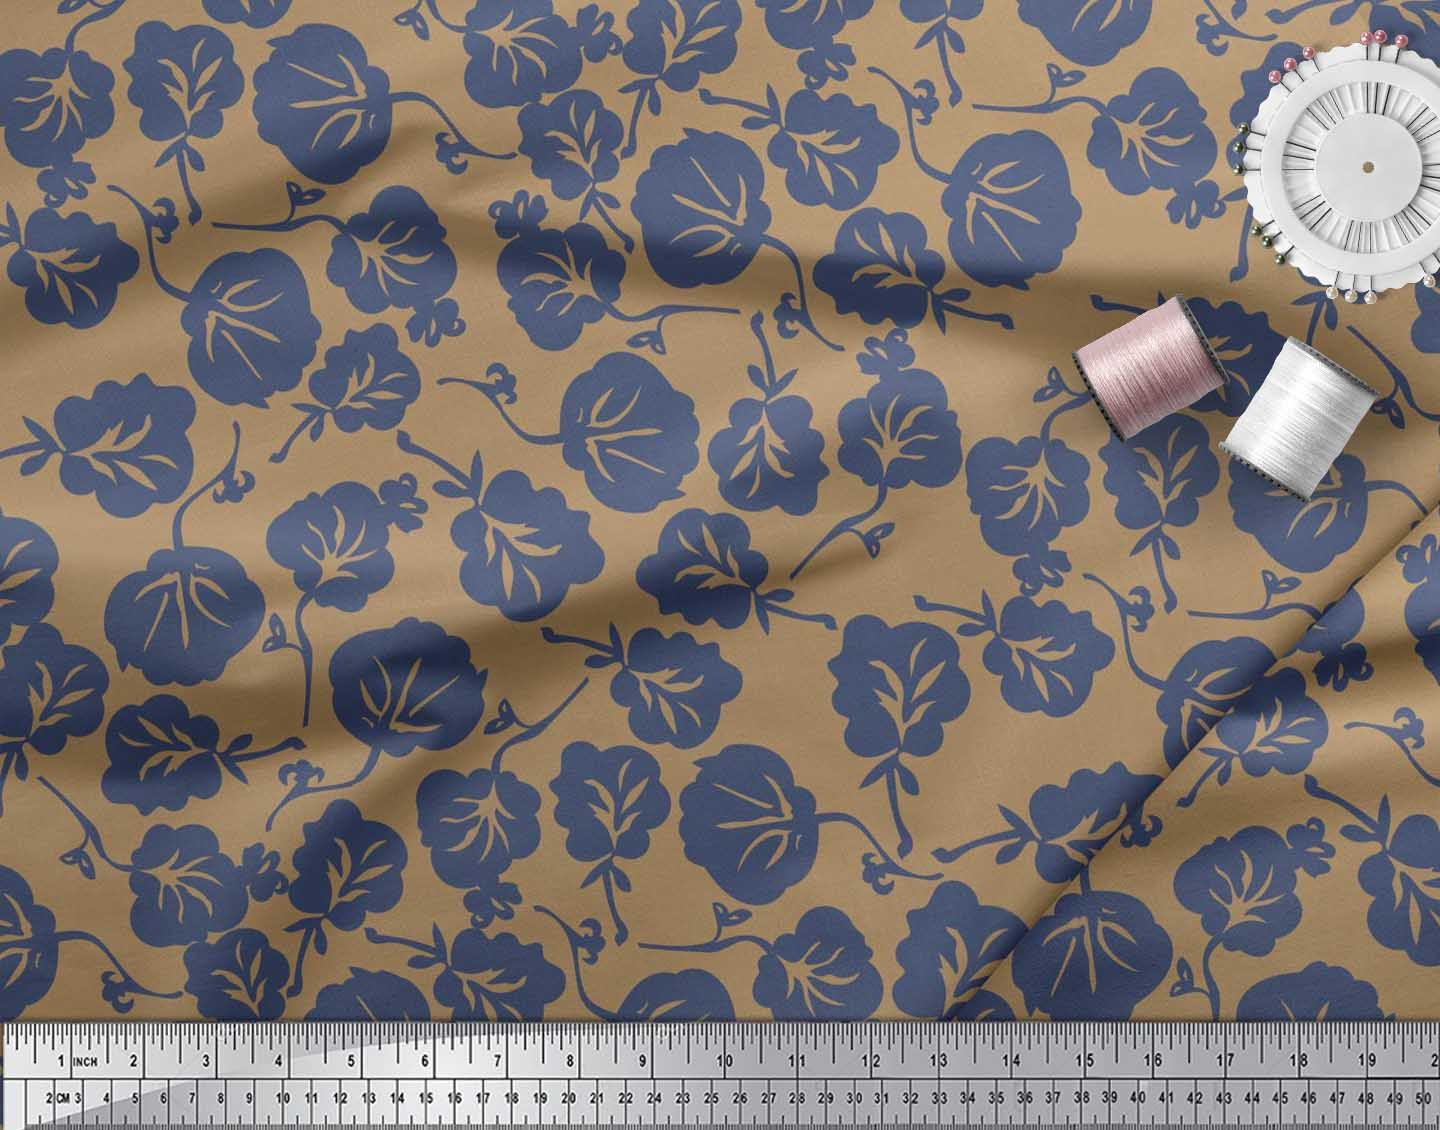 Soimoi-Cotton-Poplin-Fabric-Artistic-Floral-Decor-Fabric-Printed-xcw thumbnail 4